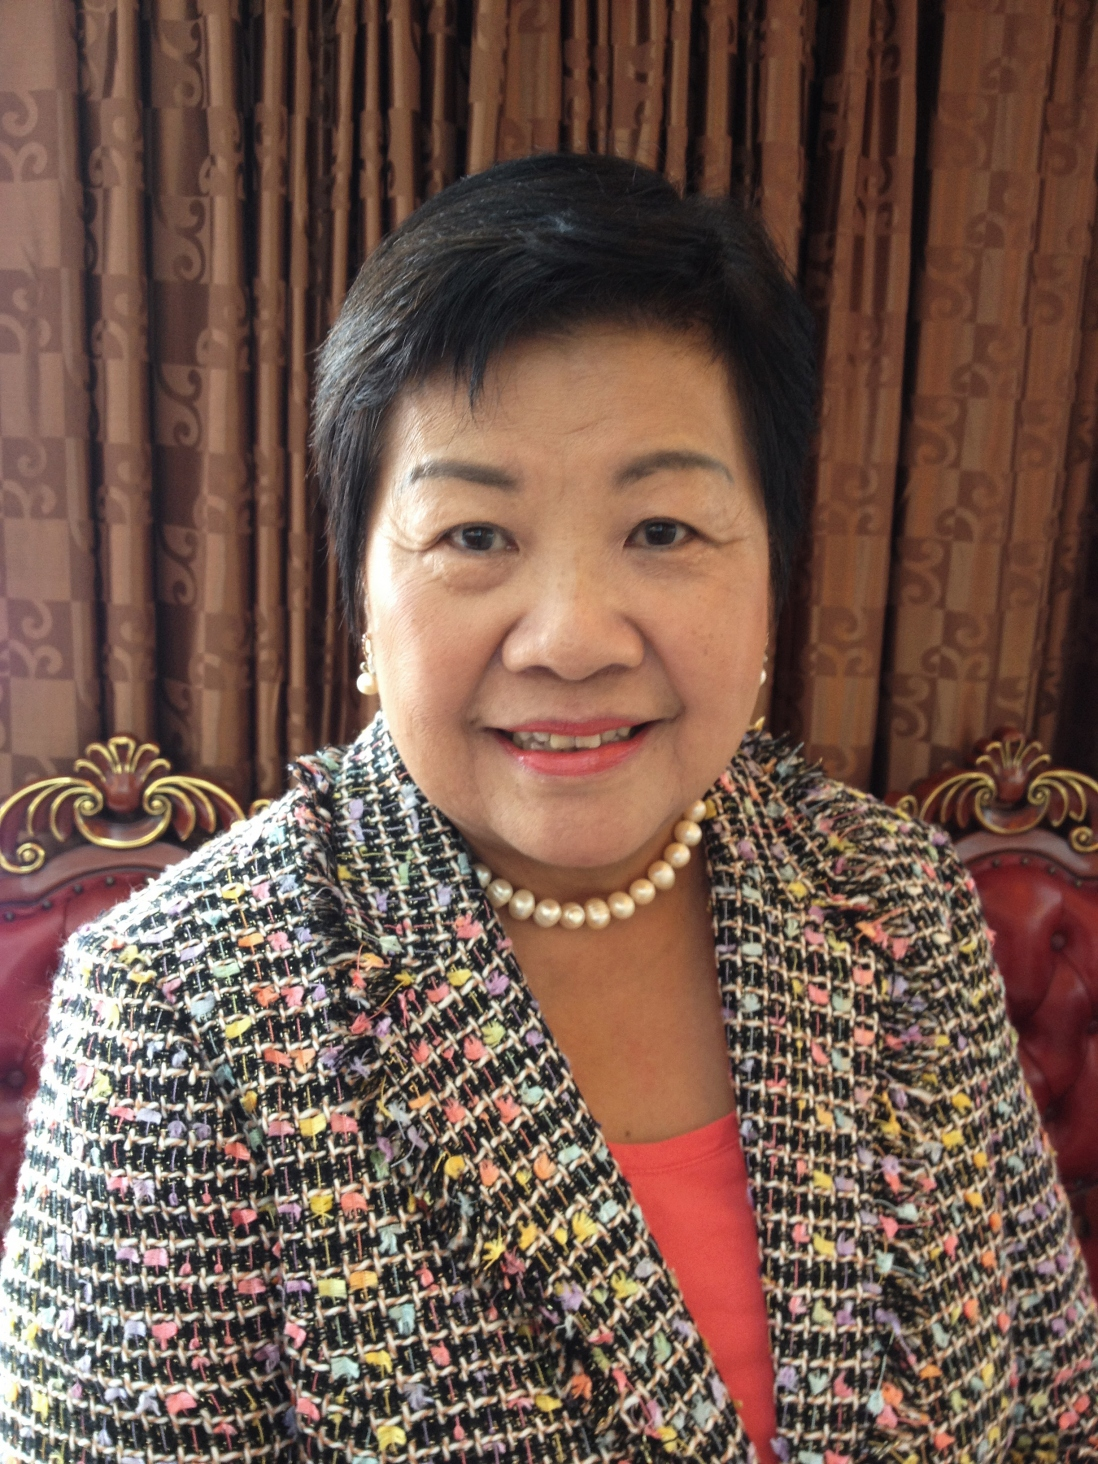 Photo of Helen wearing patterned jacket and pearl necklace.